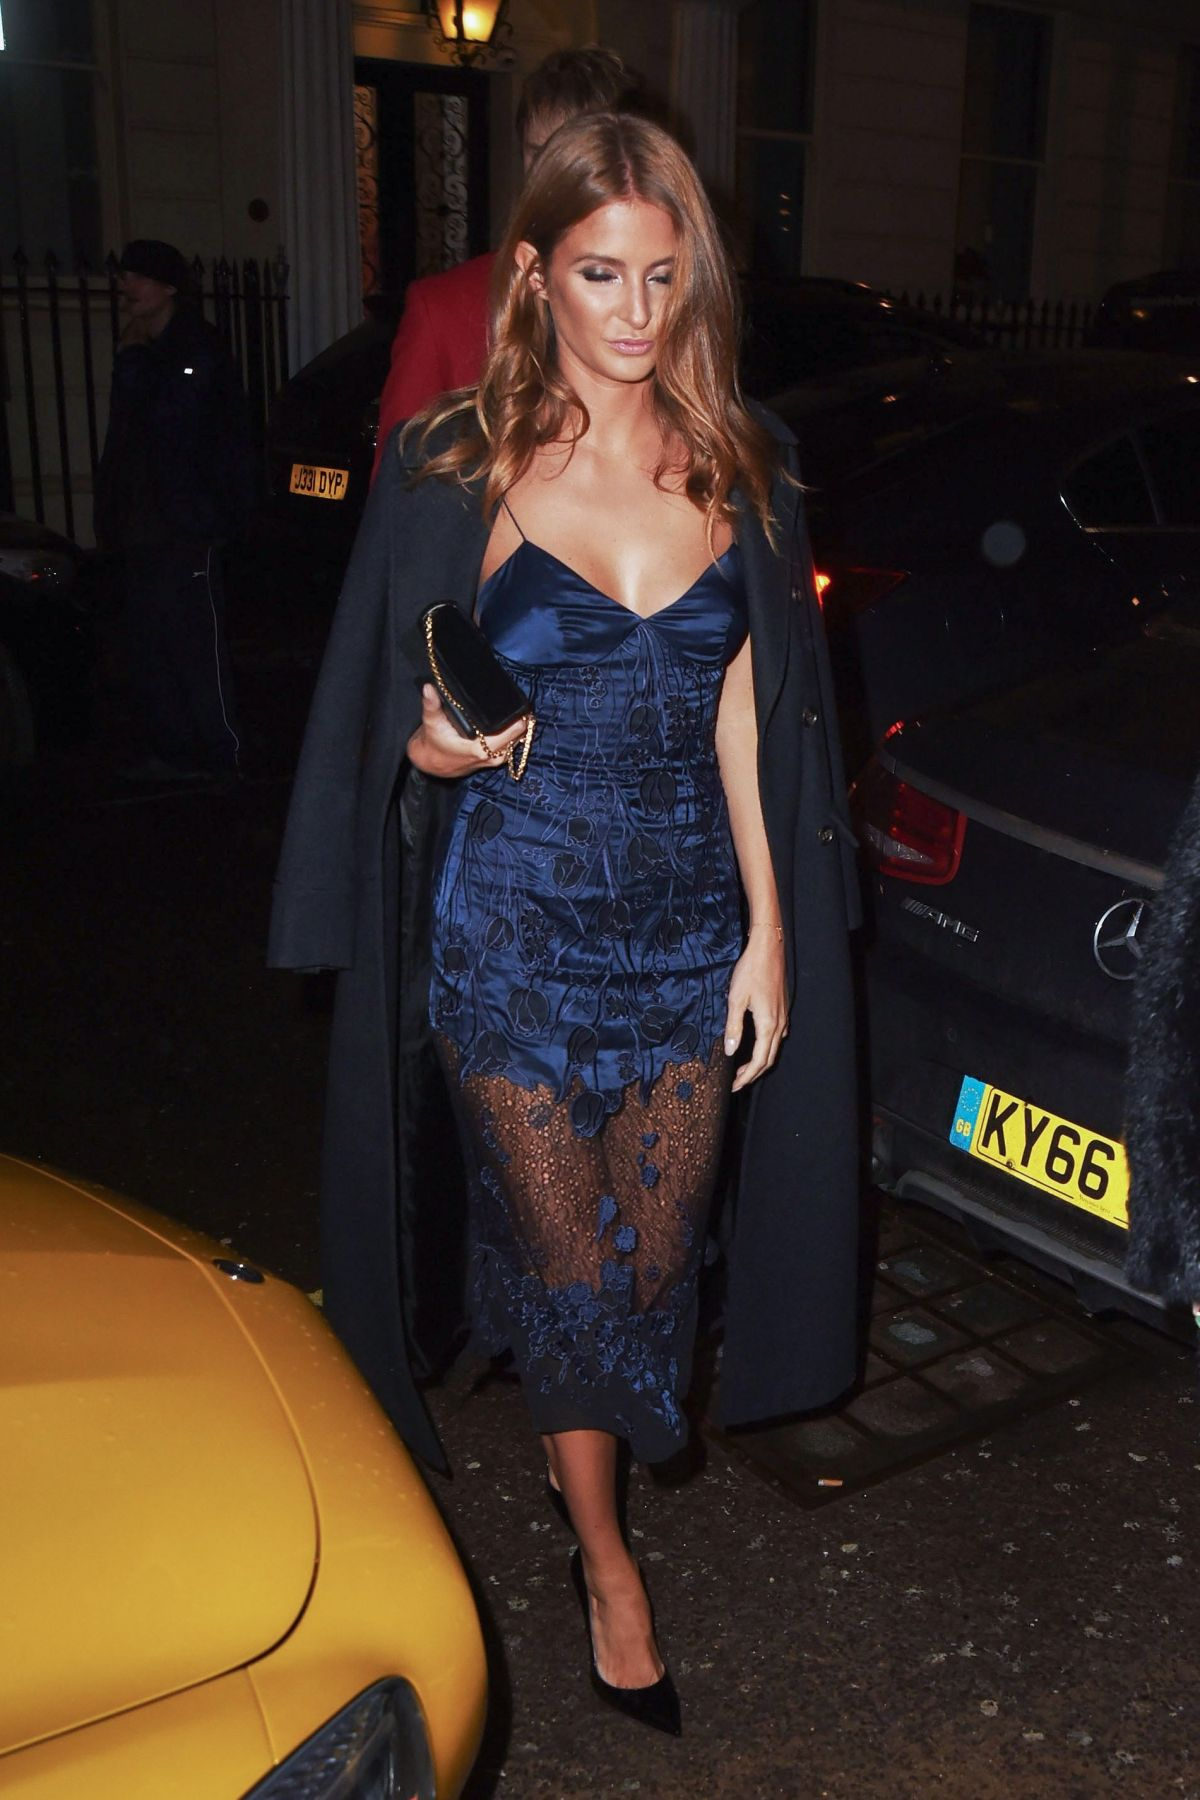 Photos Millie Mackintosh nudes (22 foto and video), Tits, Cleavage, Instagram, braless 2019